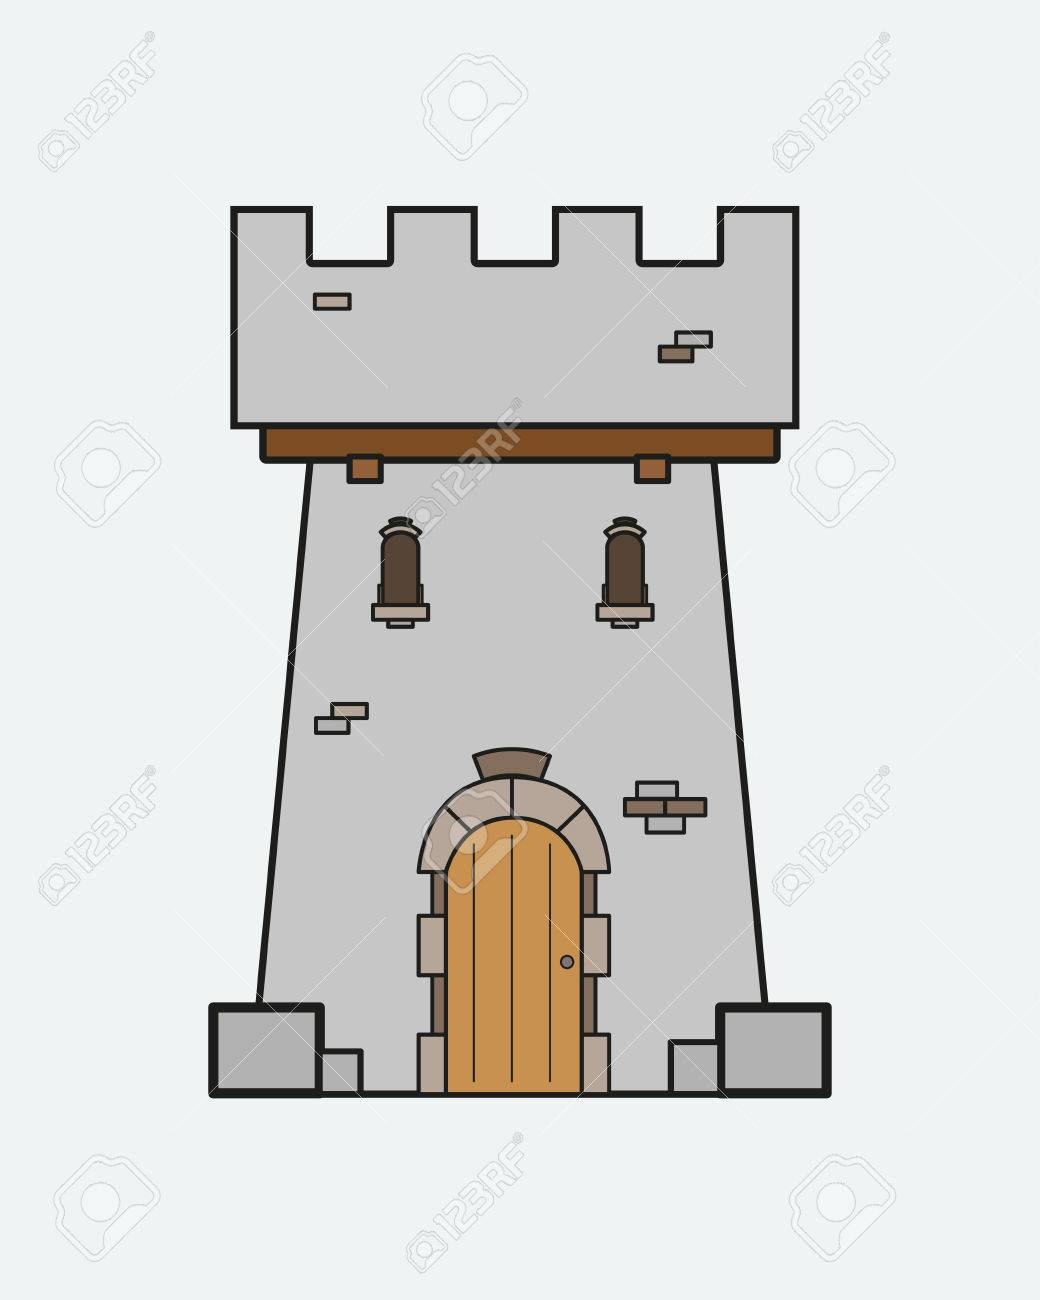 62926236 icon castle tower with a door and windows in the medieval style icon castle tower with a door and windows in the medieval style